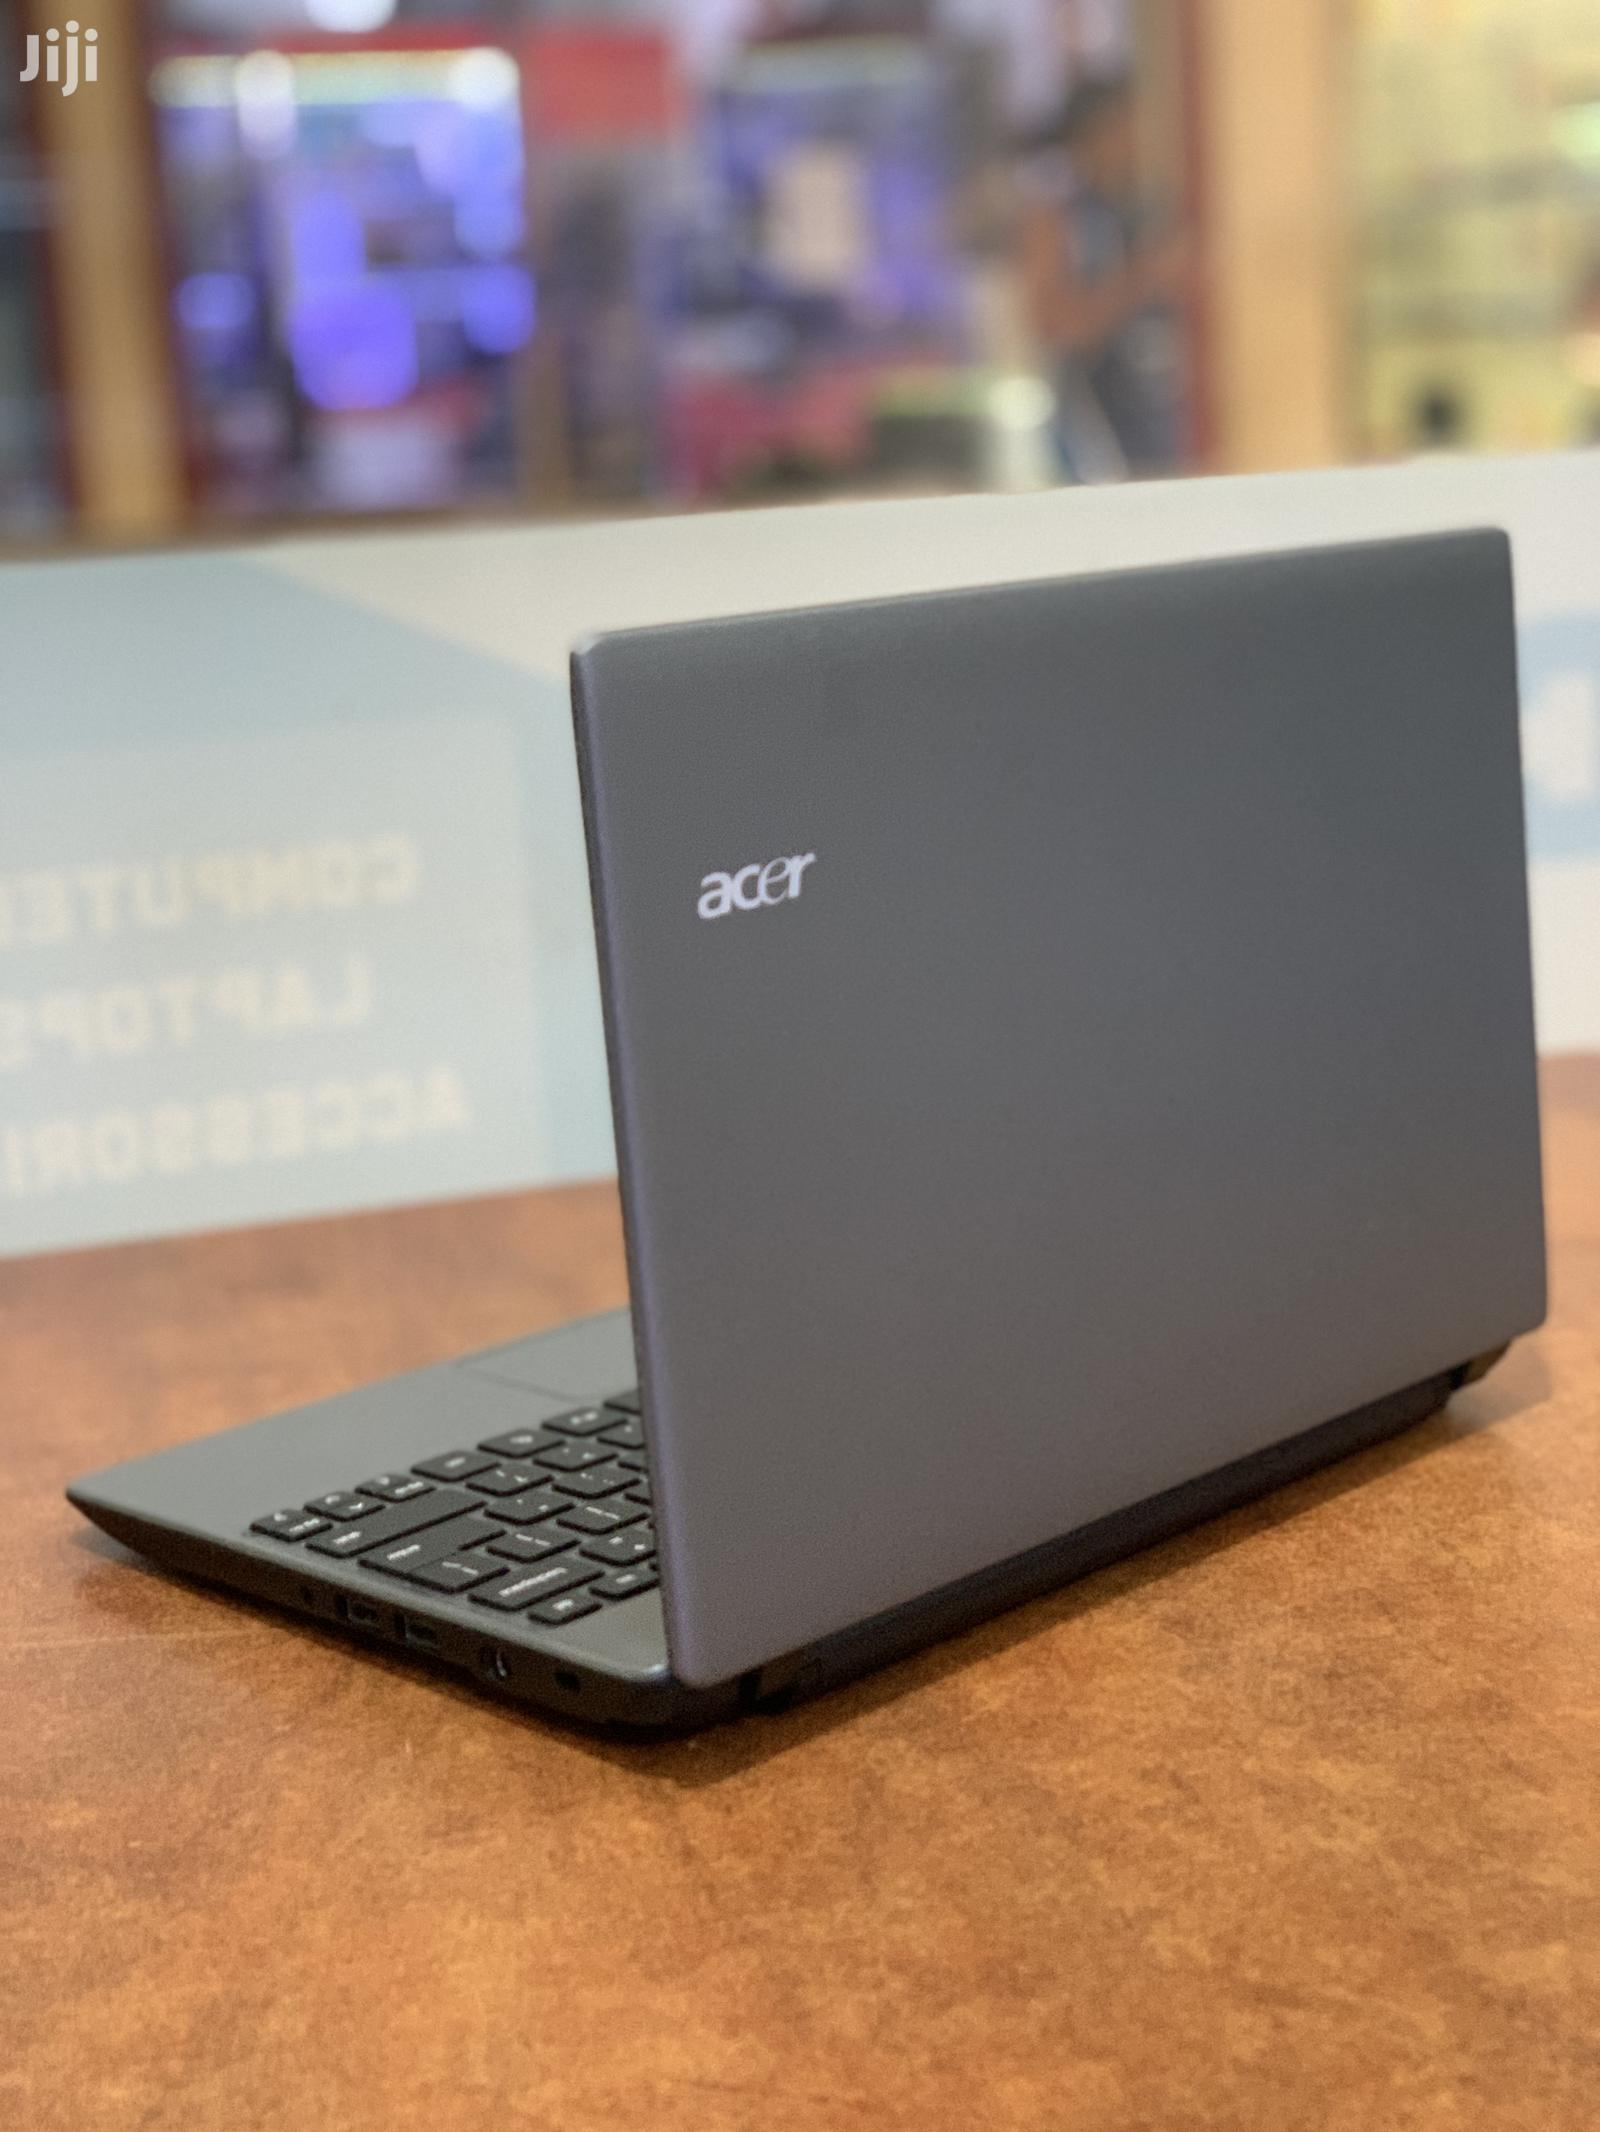 Laptop Acer Chromebook C720 4GB Intel Celeron HDD 320GB | Laptops & Computers for sale in Kampala, Central Region, Uganda